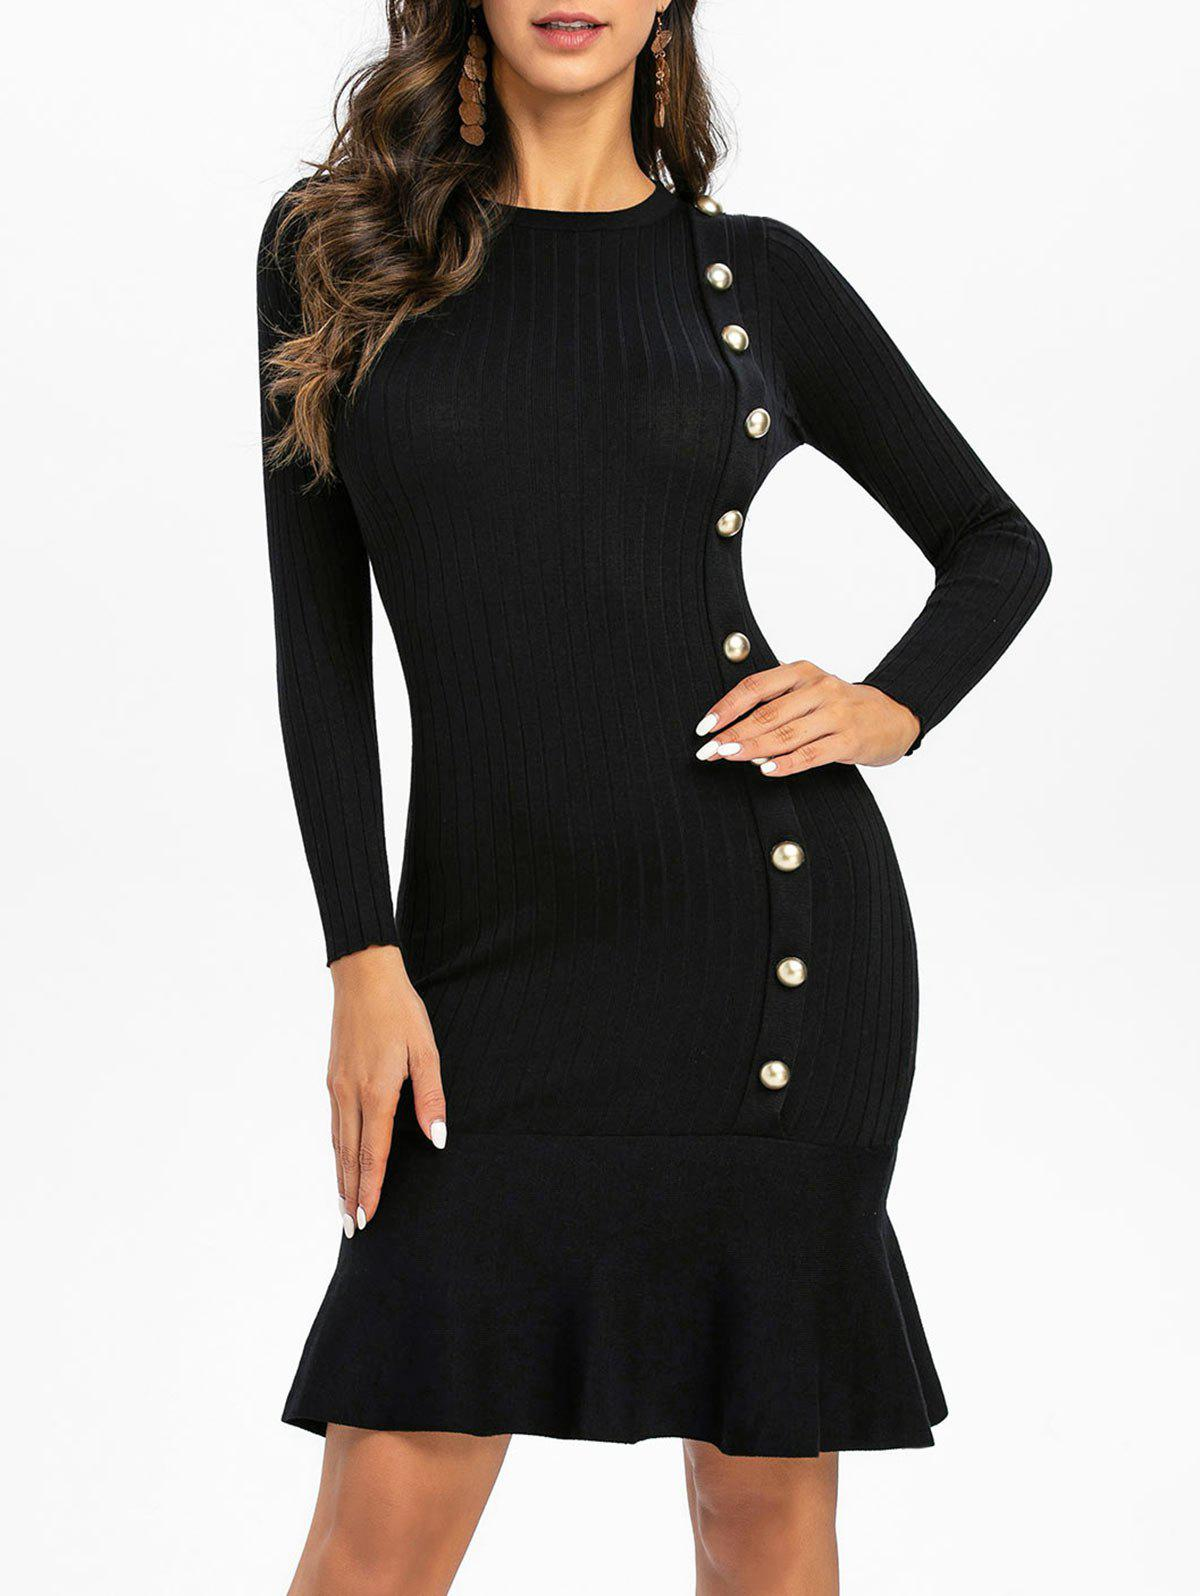 Knitted Button Embellished Mermaid Dress - BLACK ONE SIZE